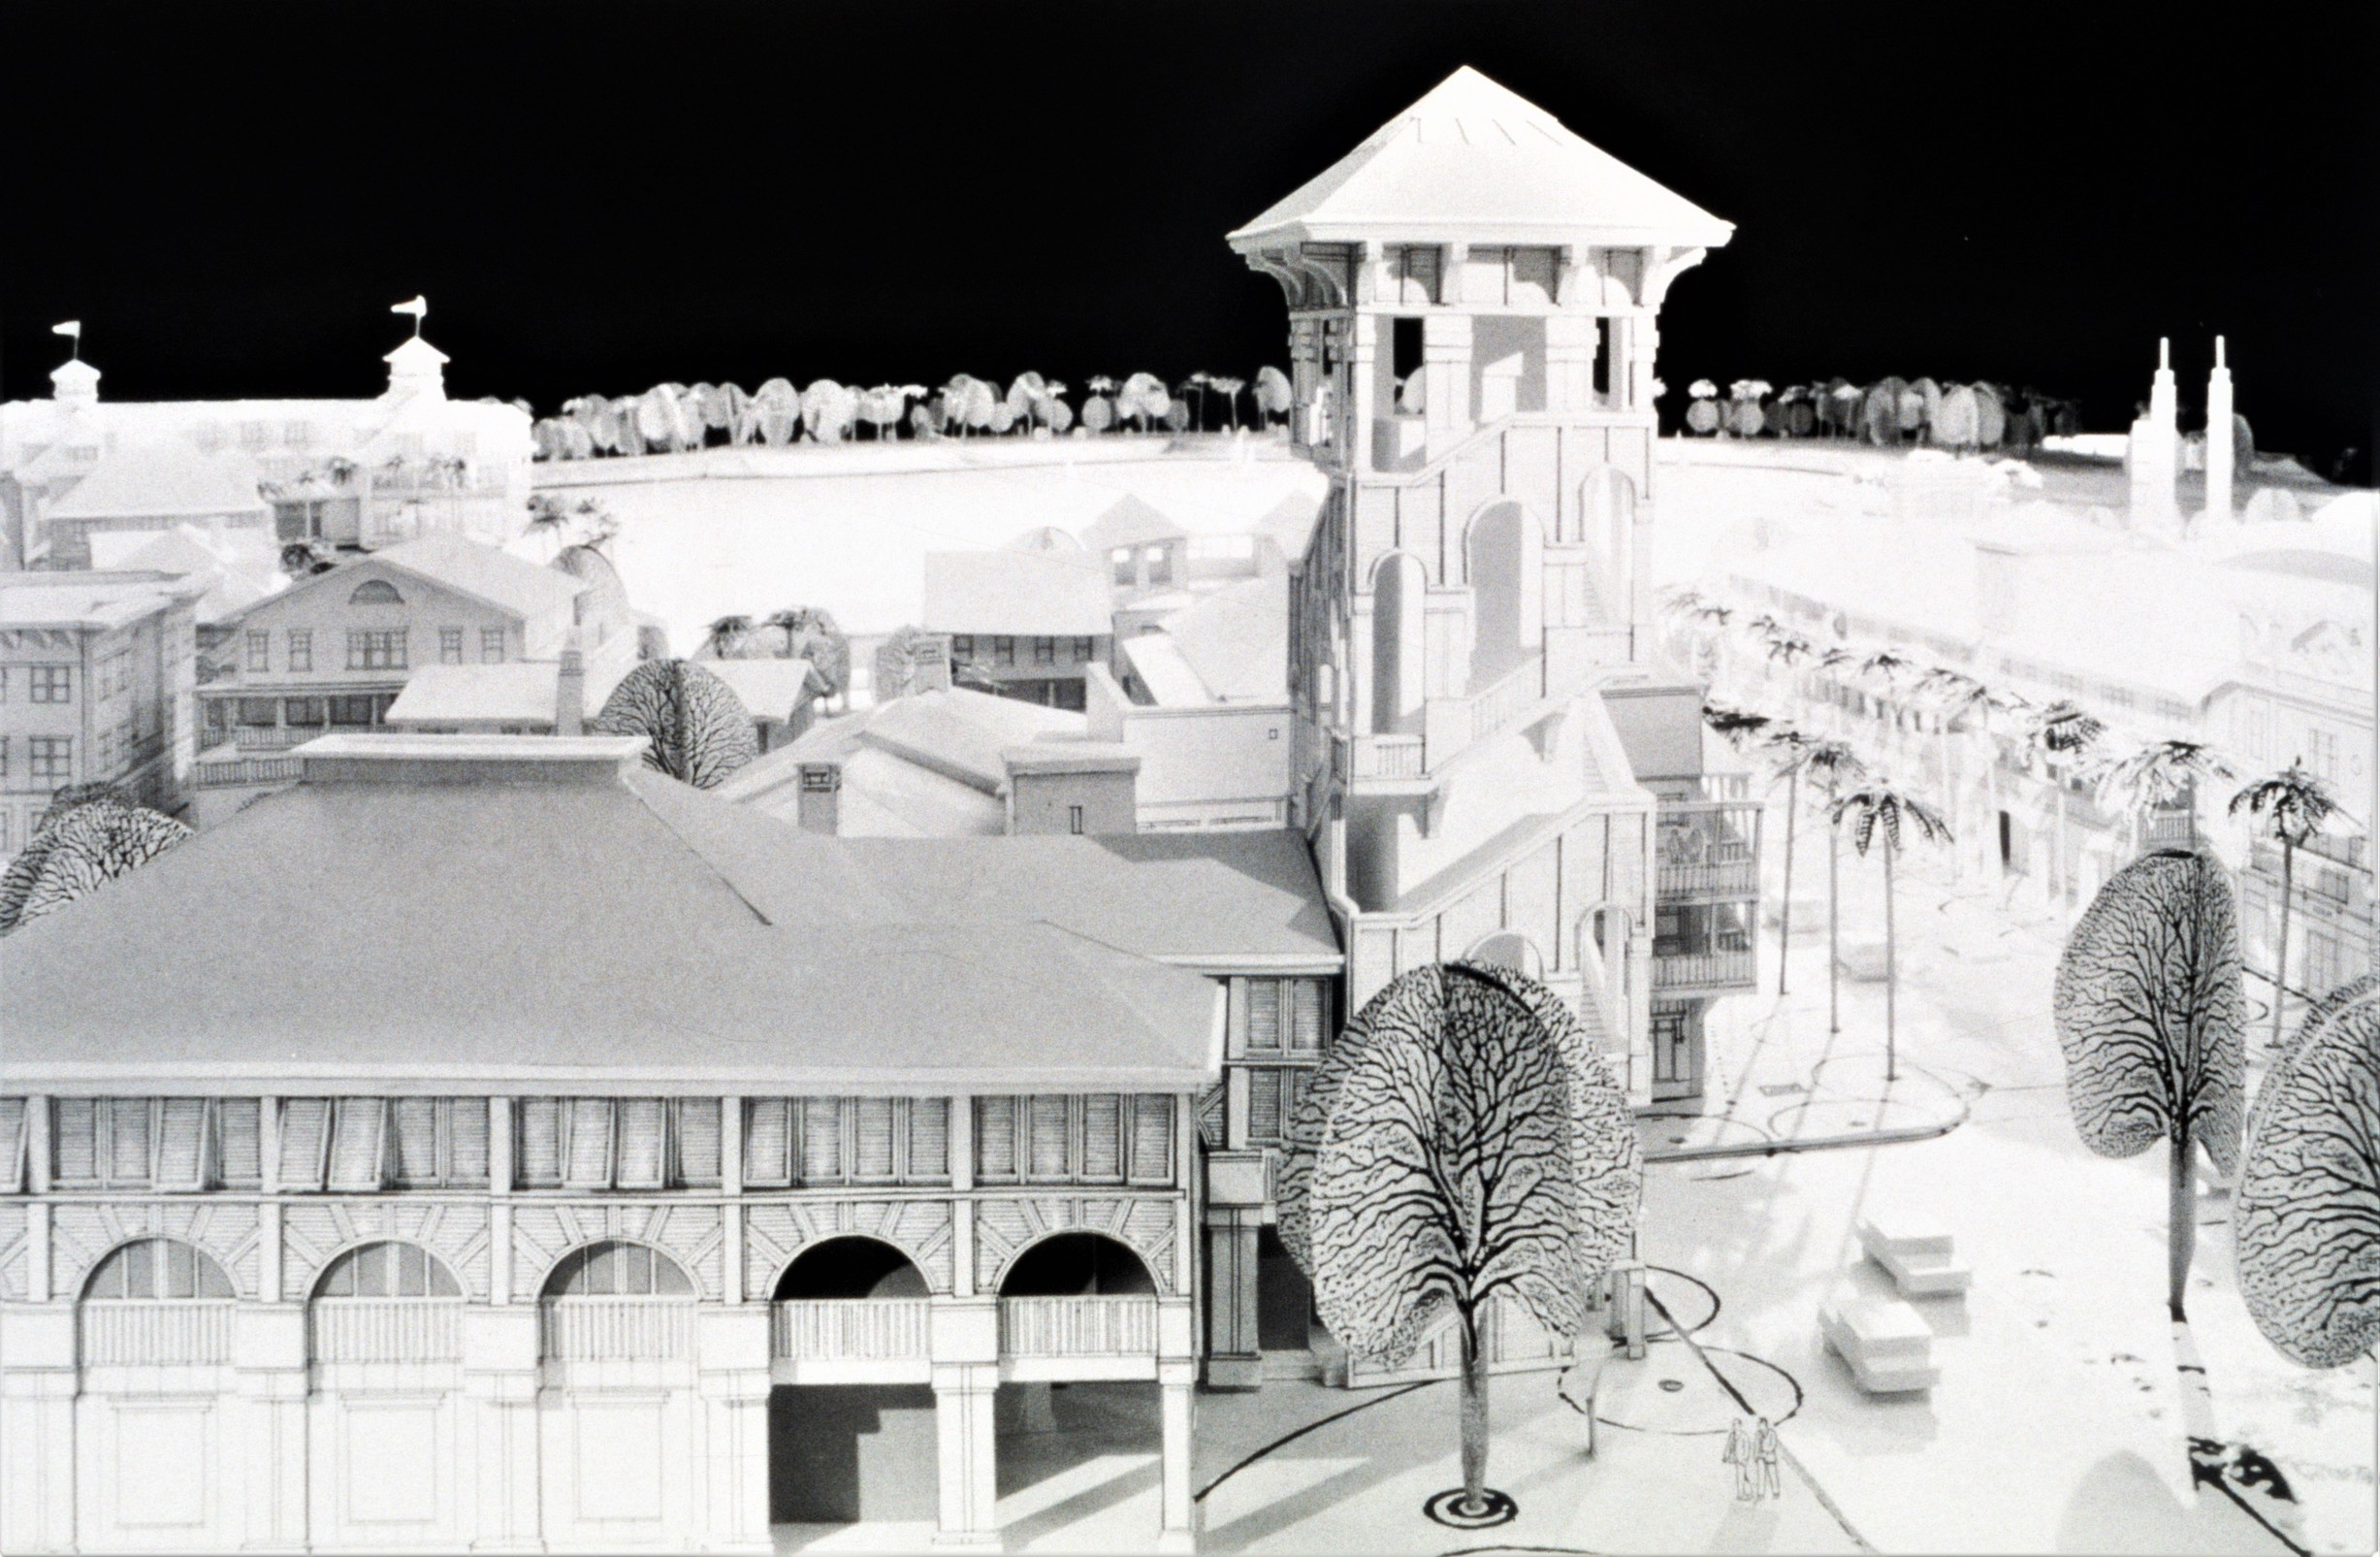 Scale Model of Town Center